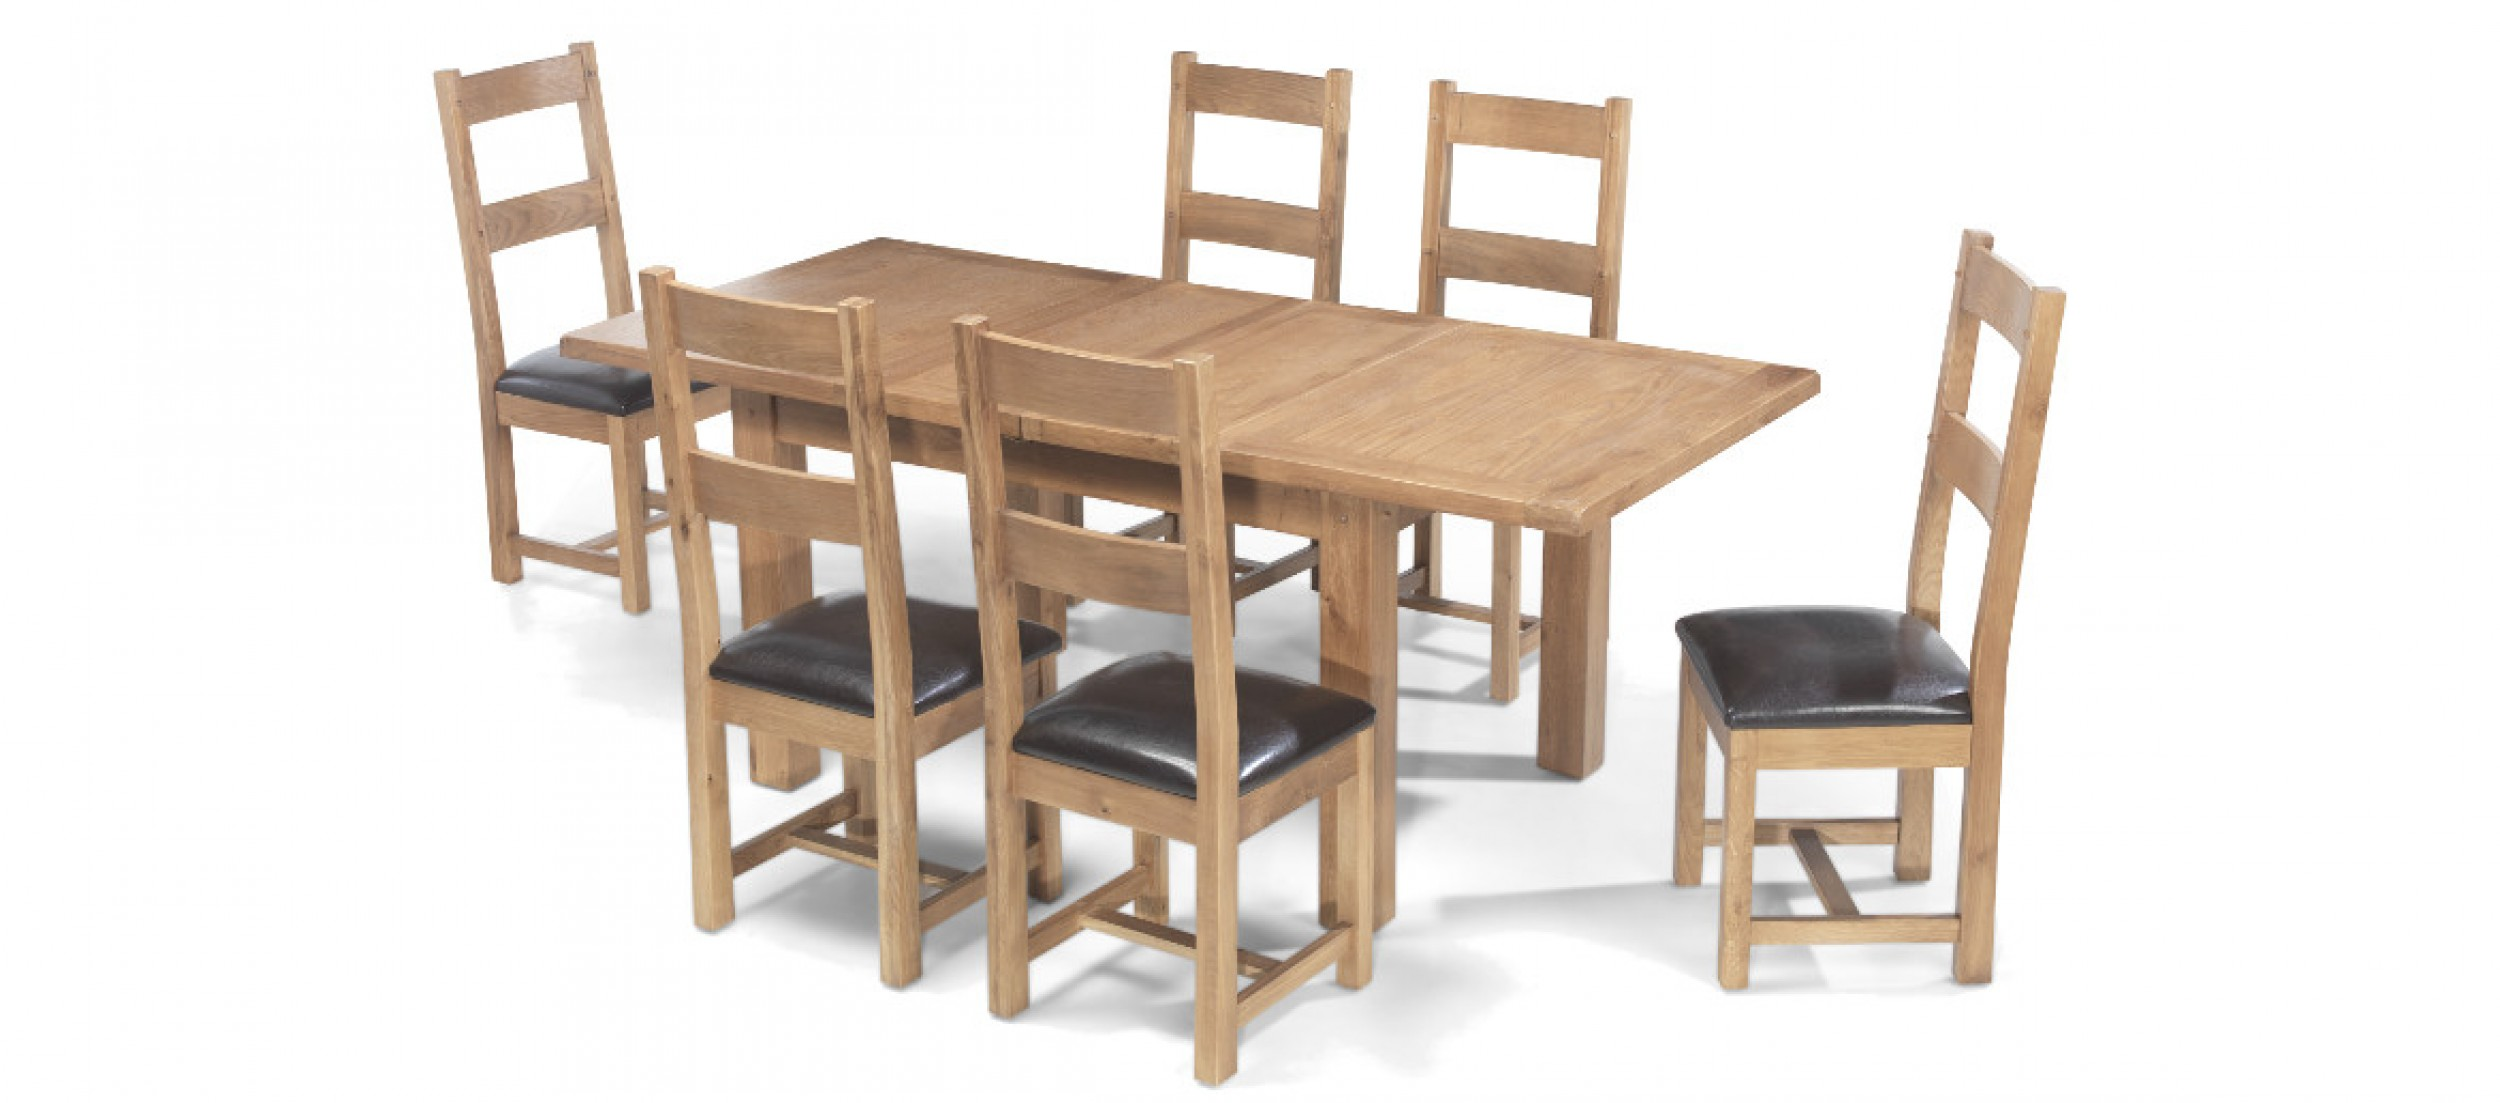 Rustic oak 132 198 cm extending dining table and 6 chairs for Dining table and 6 chairs